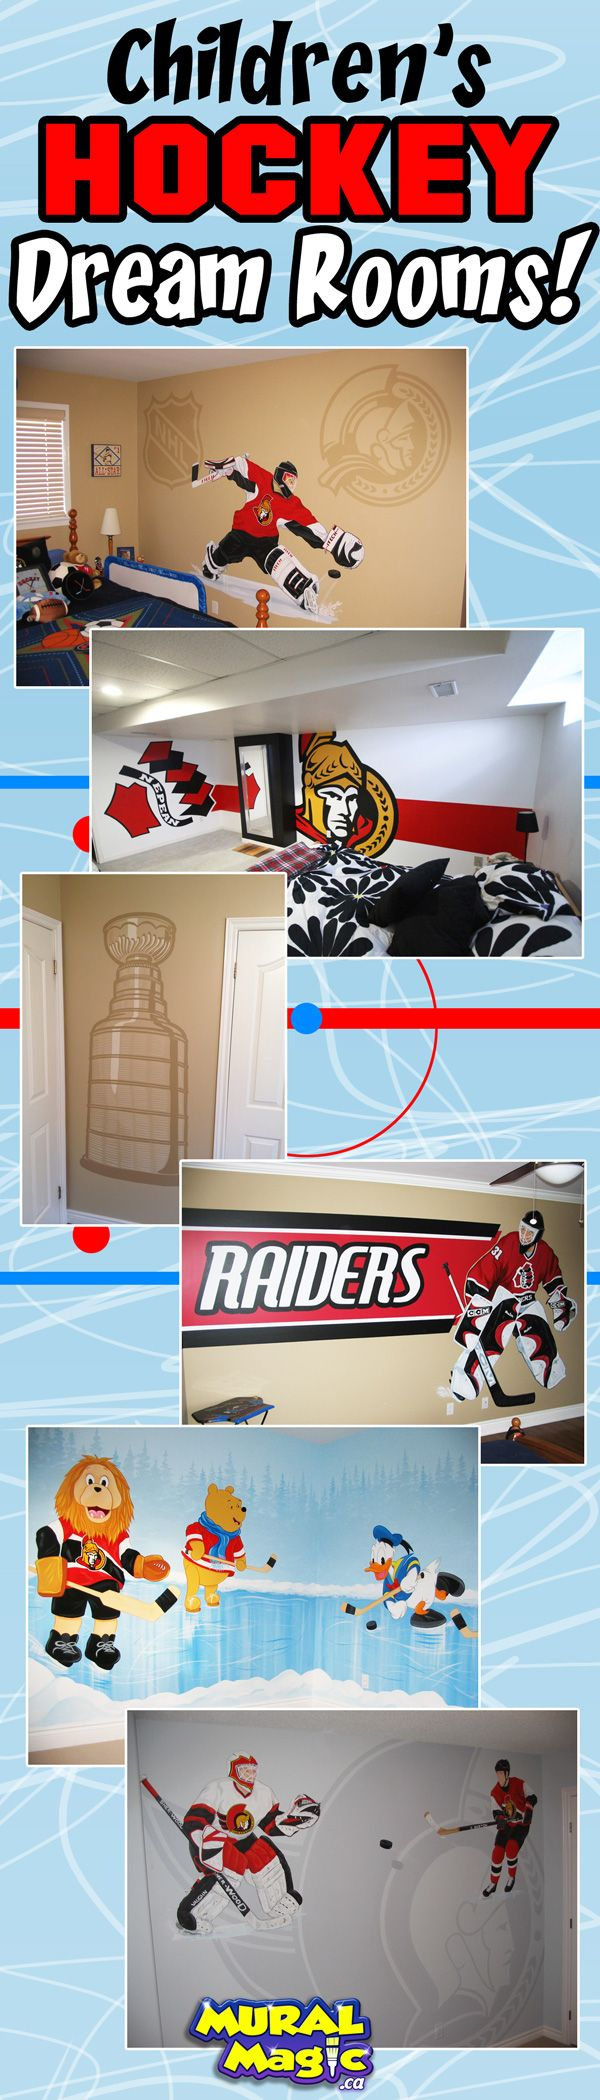 Mural paintings of hockey themes for children's rooms and man caves in Ottawa Ontario. Ottawa Senators, Montreal Canadiennes, Toronto Maple Leafs, NHL